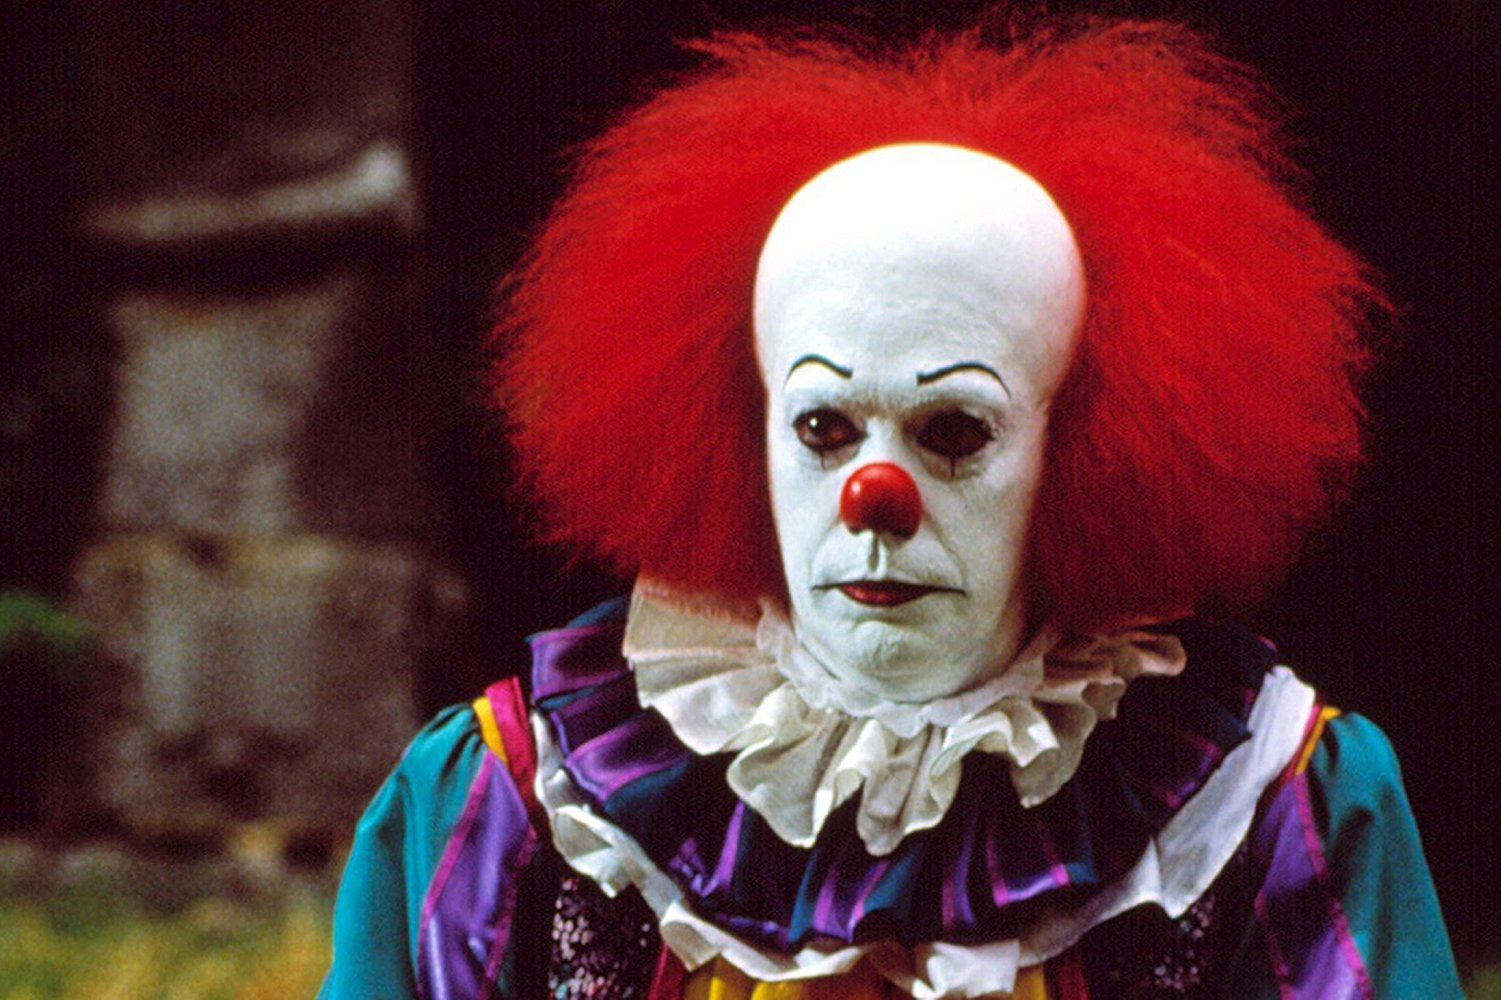 Tim Curry as Pennywise in It (1990)